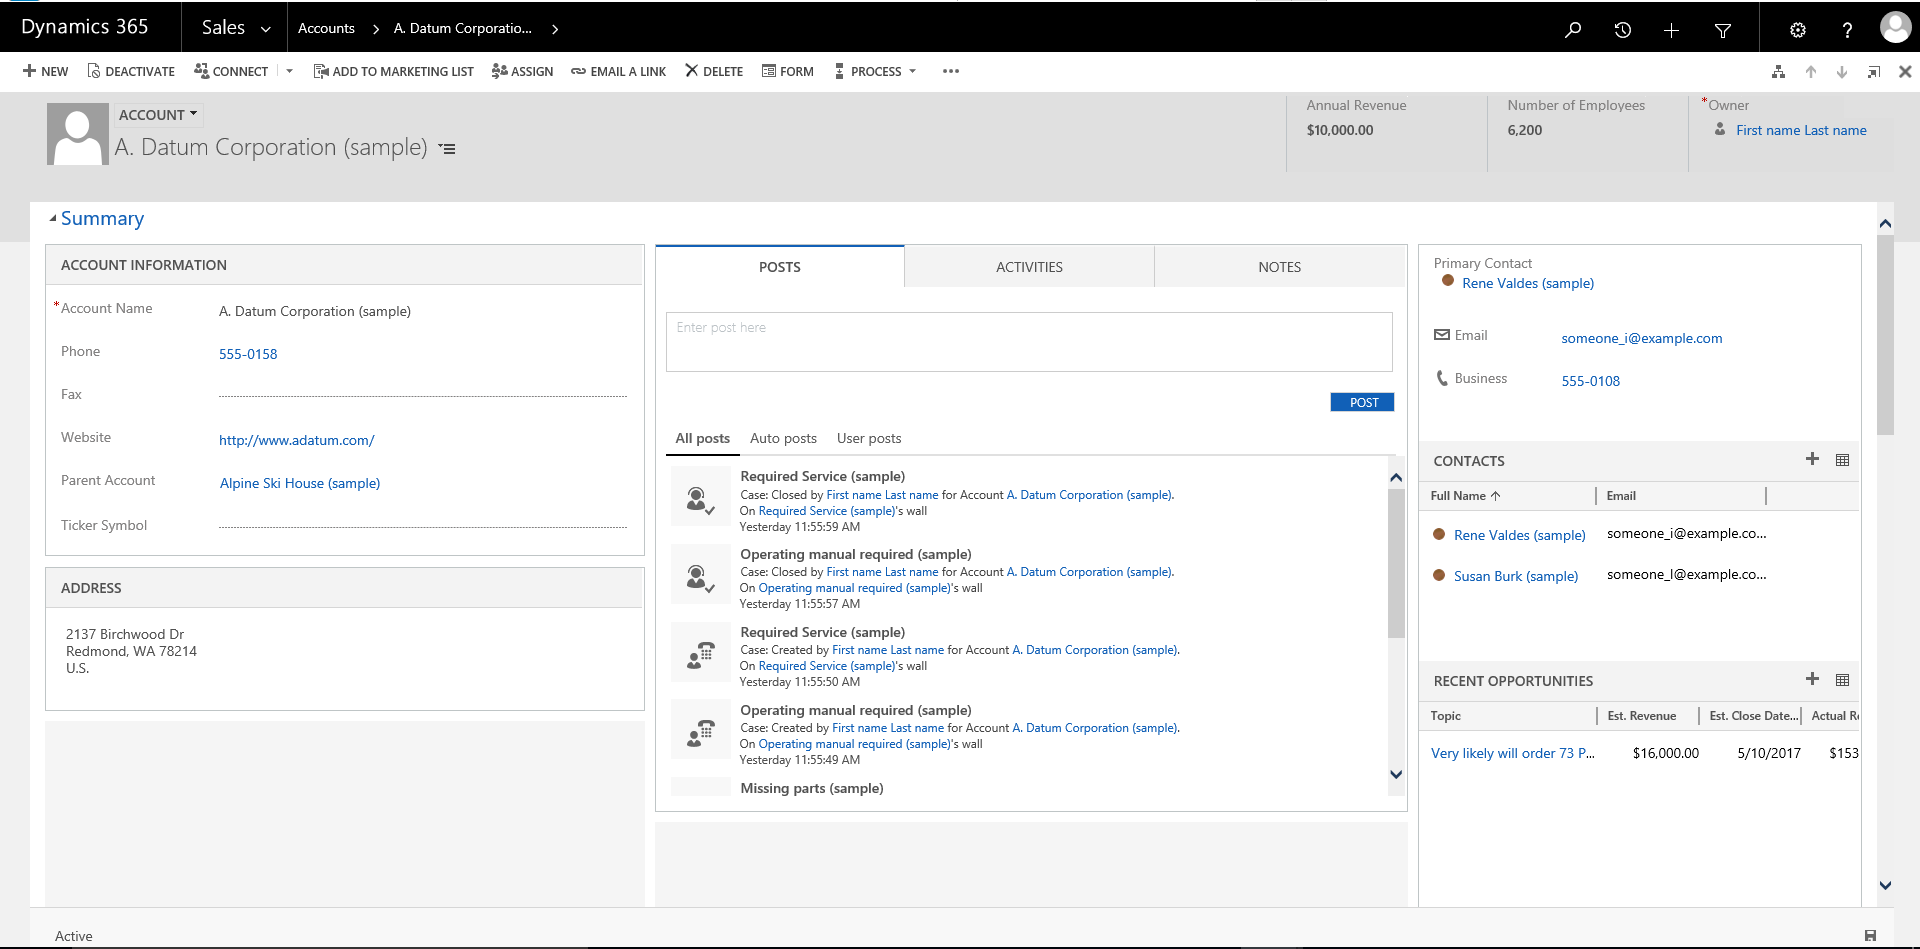 The new user interface of web client